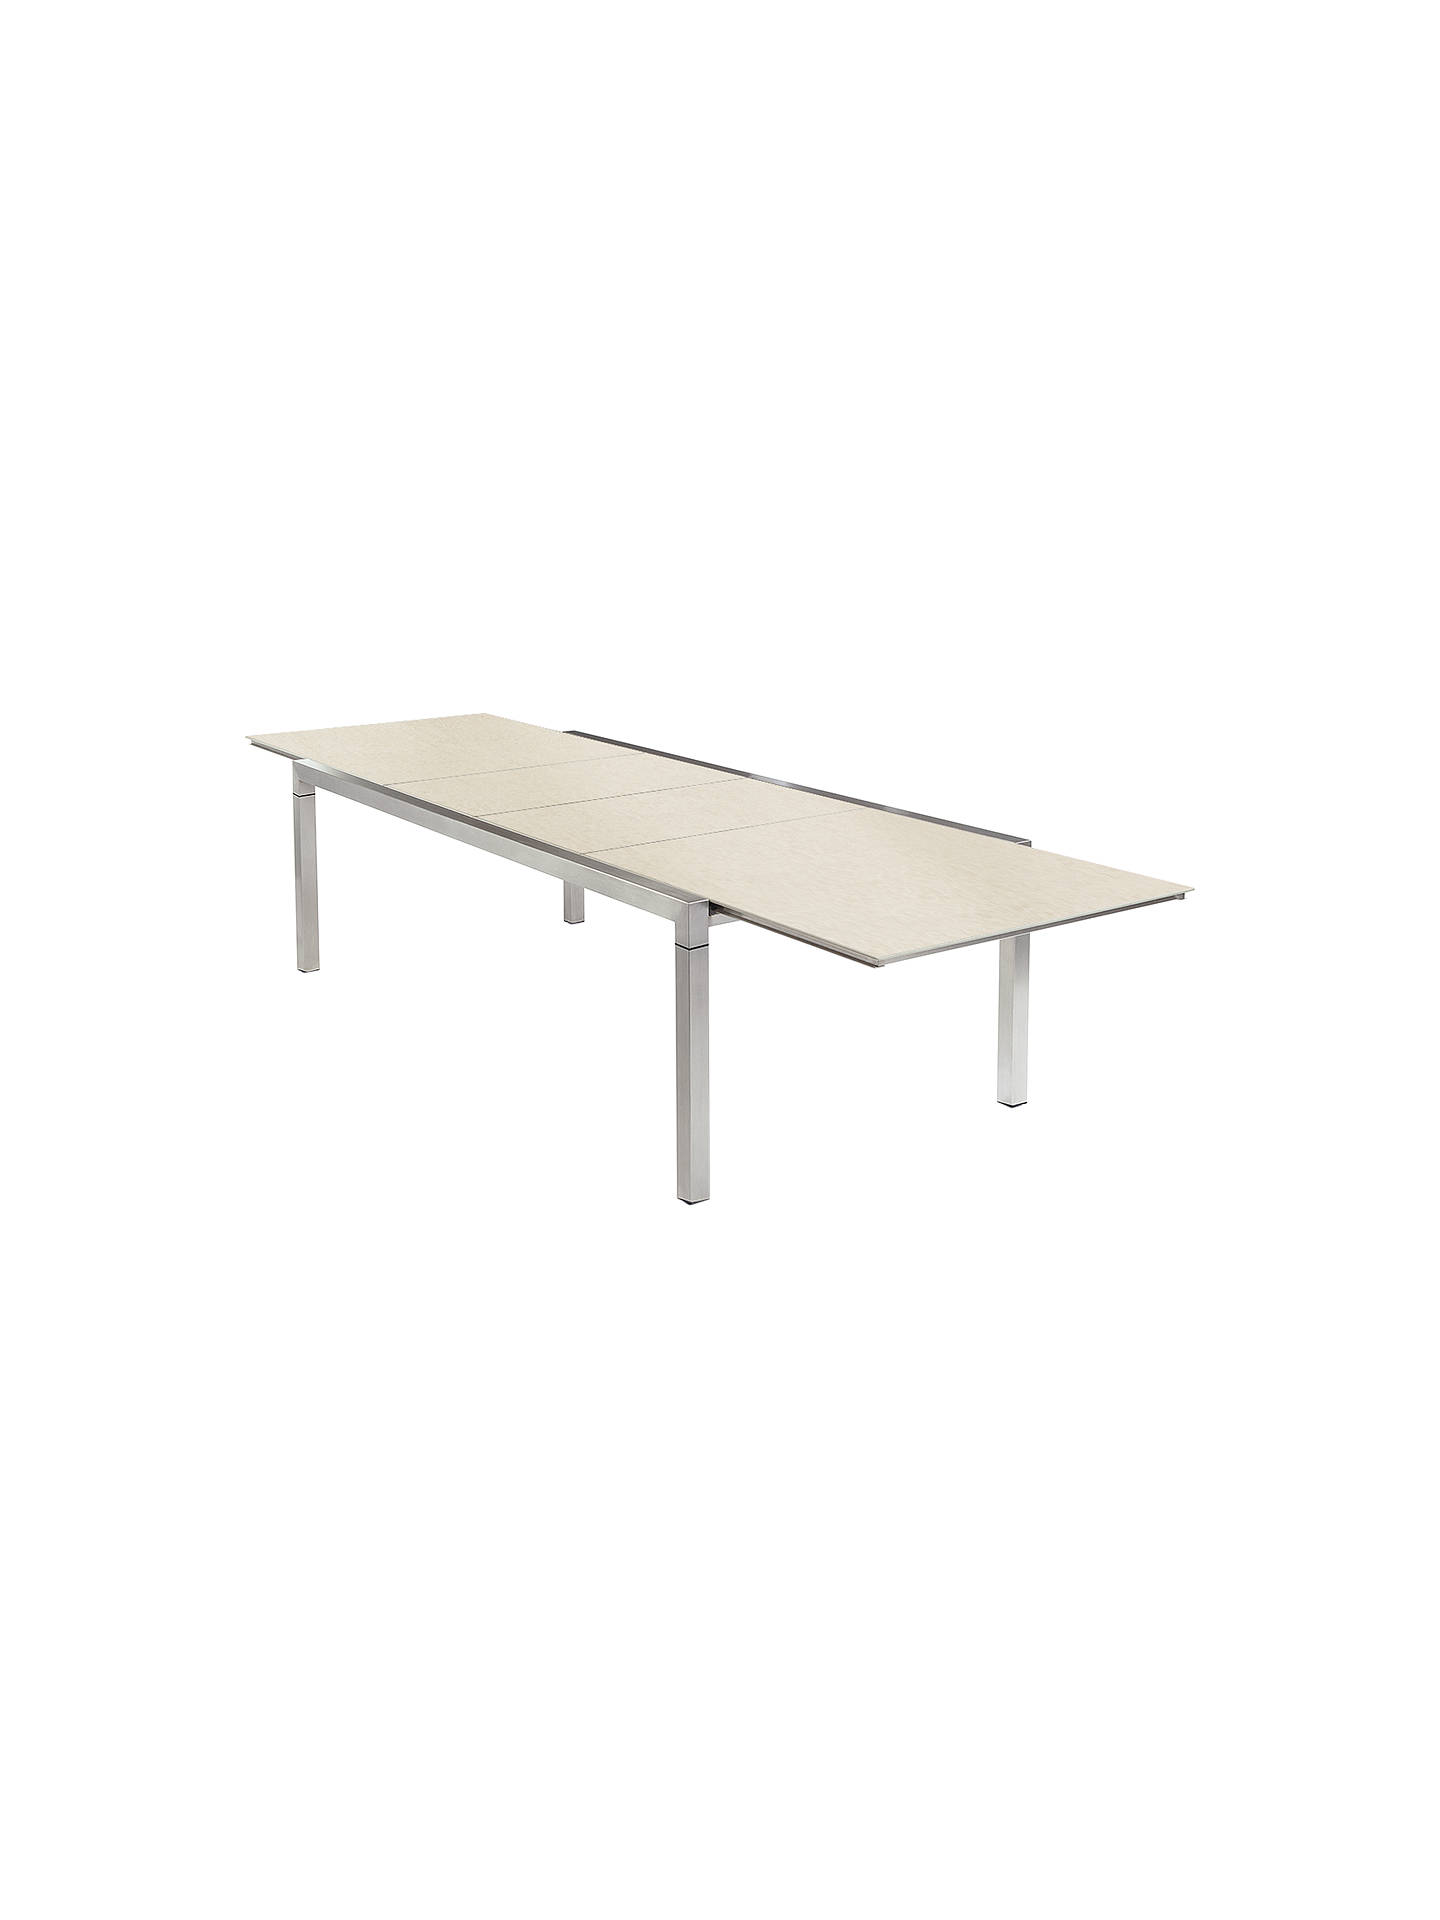 Buybarlow tyrie equinox 360 extending dining table with ceramic top ivory online at johnlewis